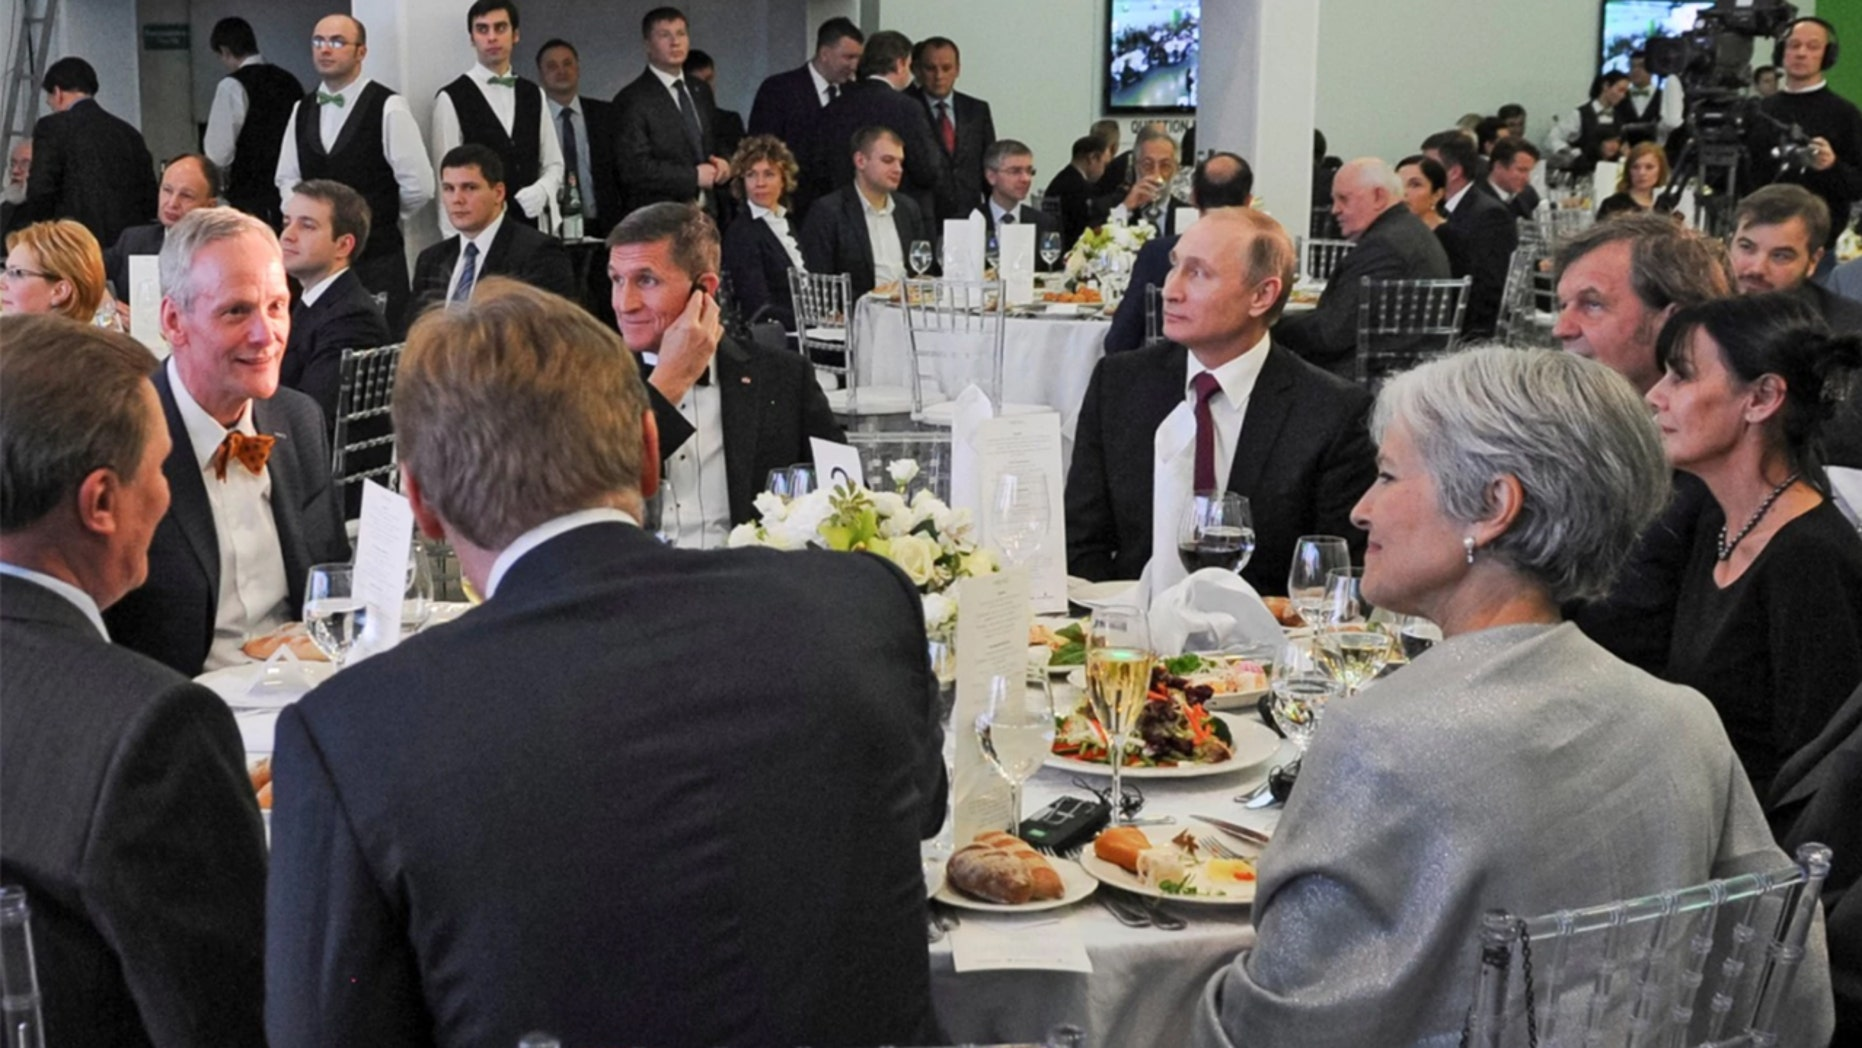 Russian President Vladimir Putin, center right, with retired U.S. Lt. Gen. Michael T. Flynn, center left, and former Green Party presidential candidate Jill Stein, front right, attend a 2015 dinner in Moscow.